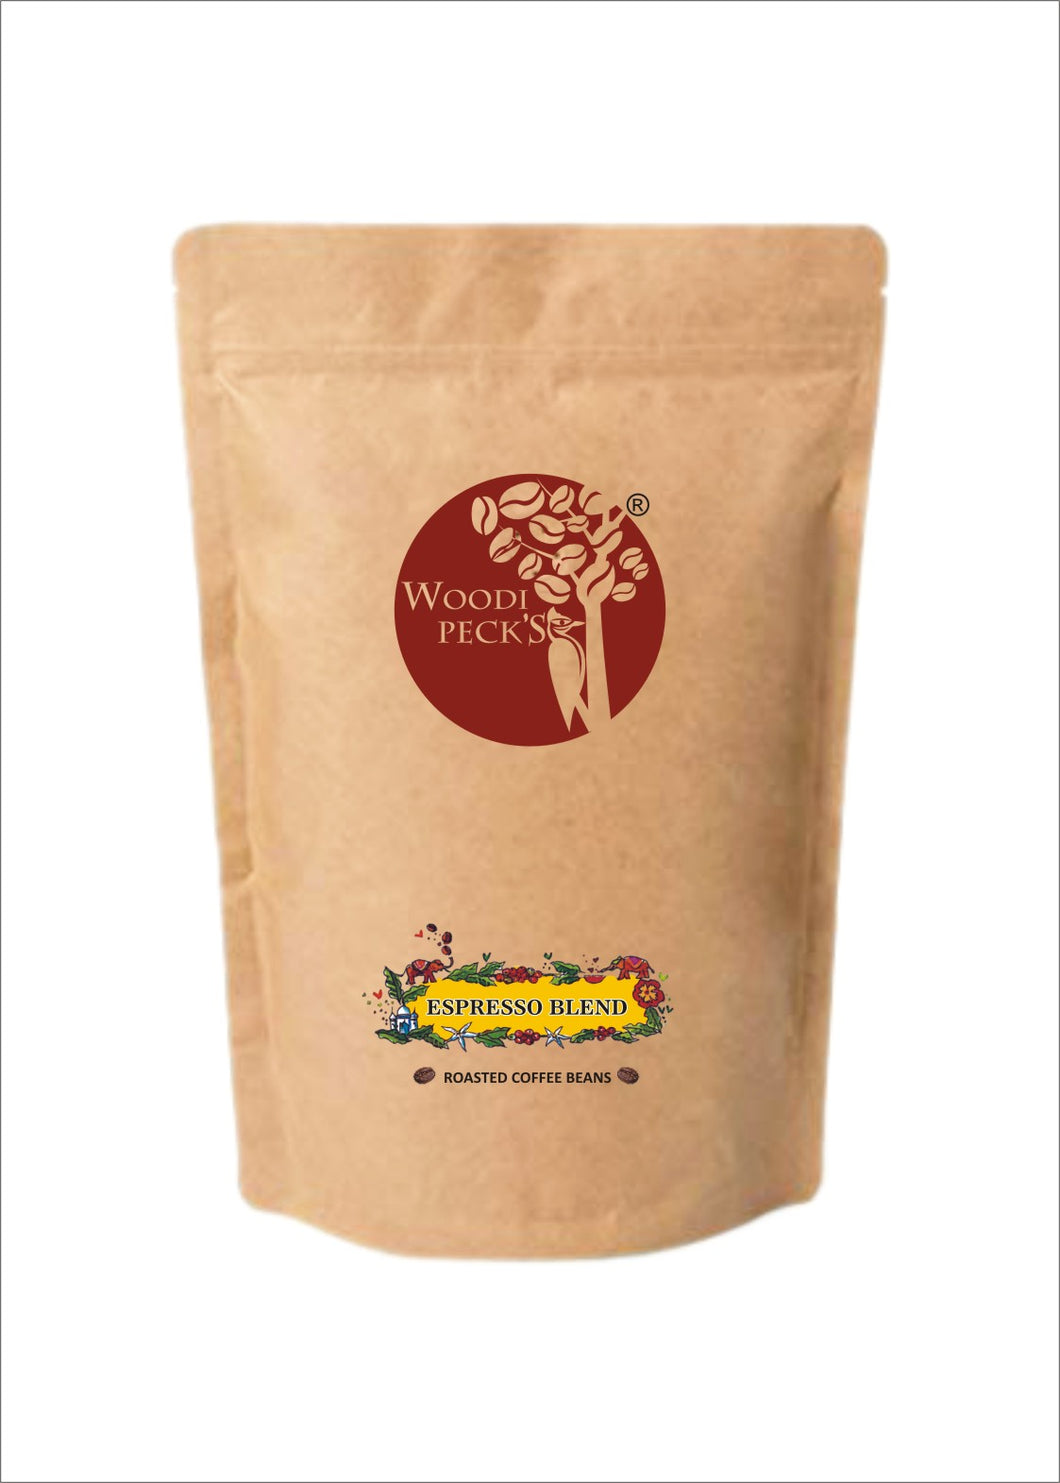 Woodi Peck's Espresso Blend Roasted Coffee Beans